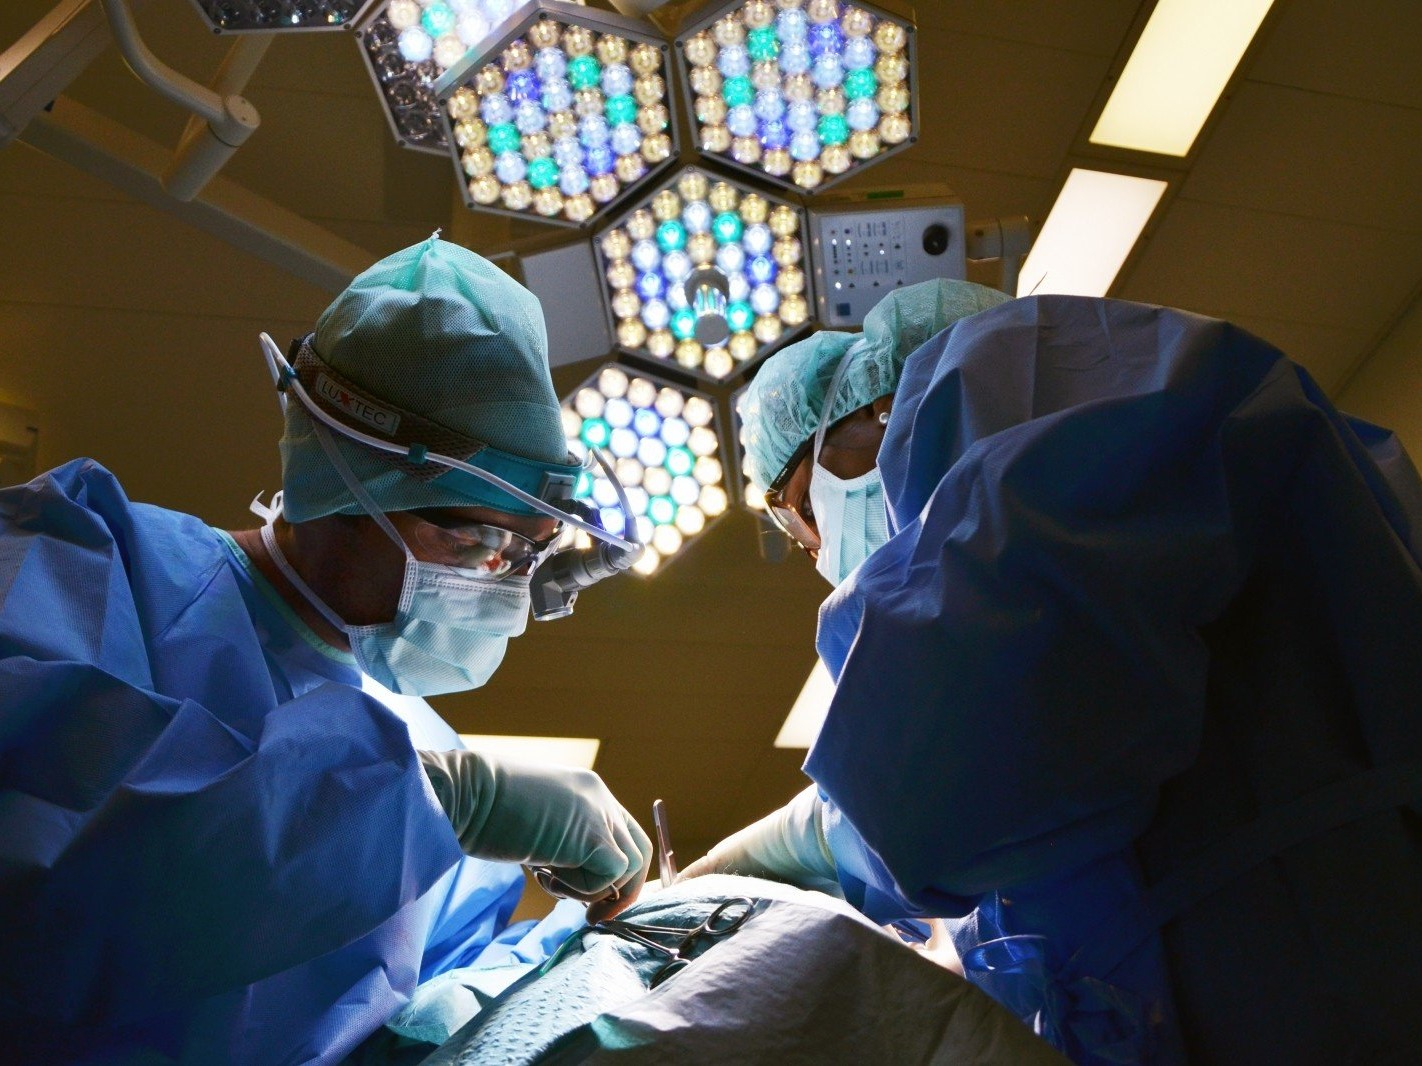 Remote Surgery Comes True with 5G Supported by Huawei & China Mobile